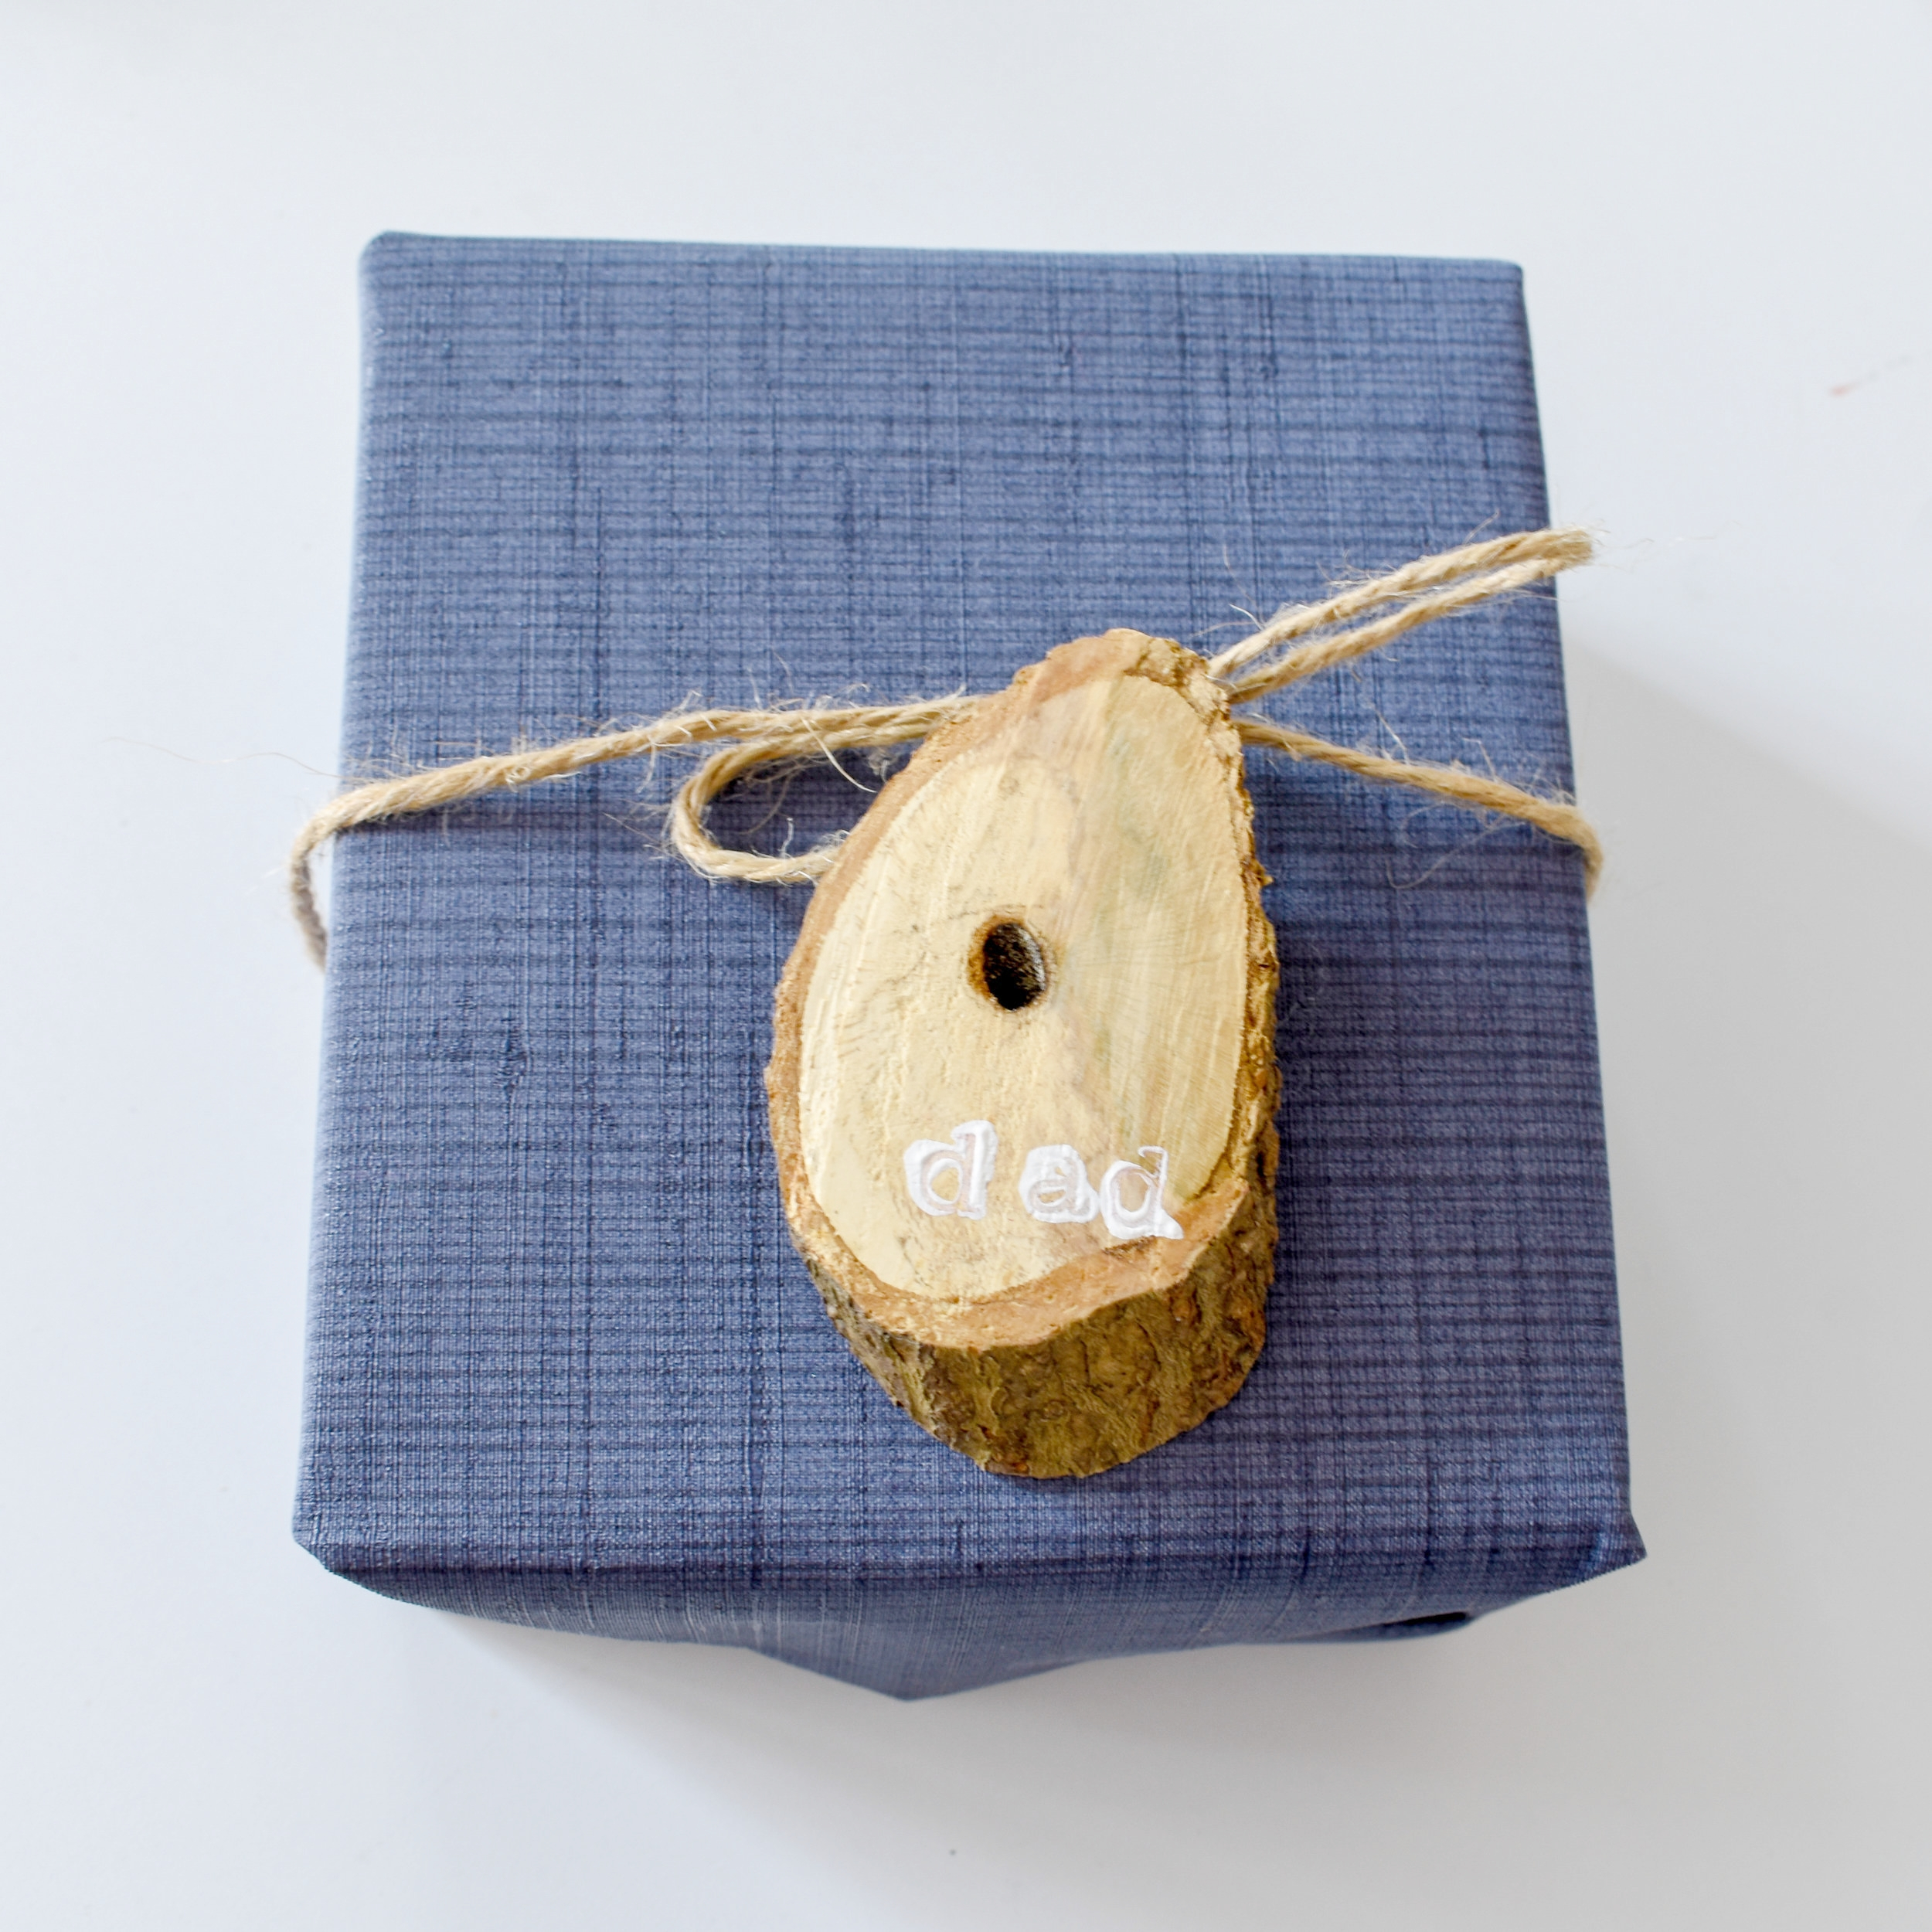 DIY gift wrapping ideas for him - Rustic gift tags made from fallen tree branches